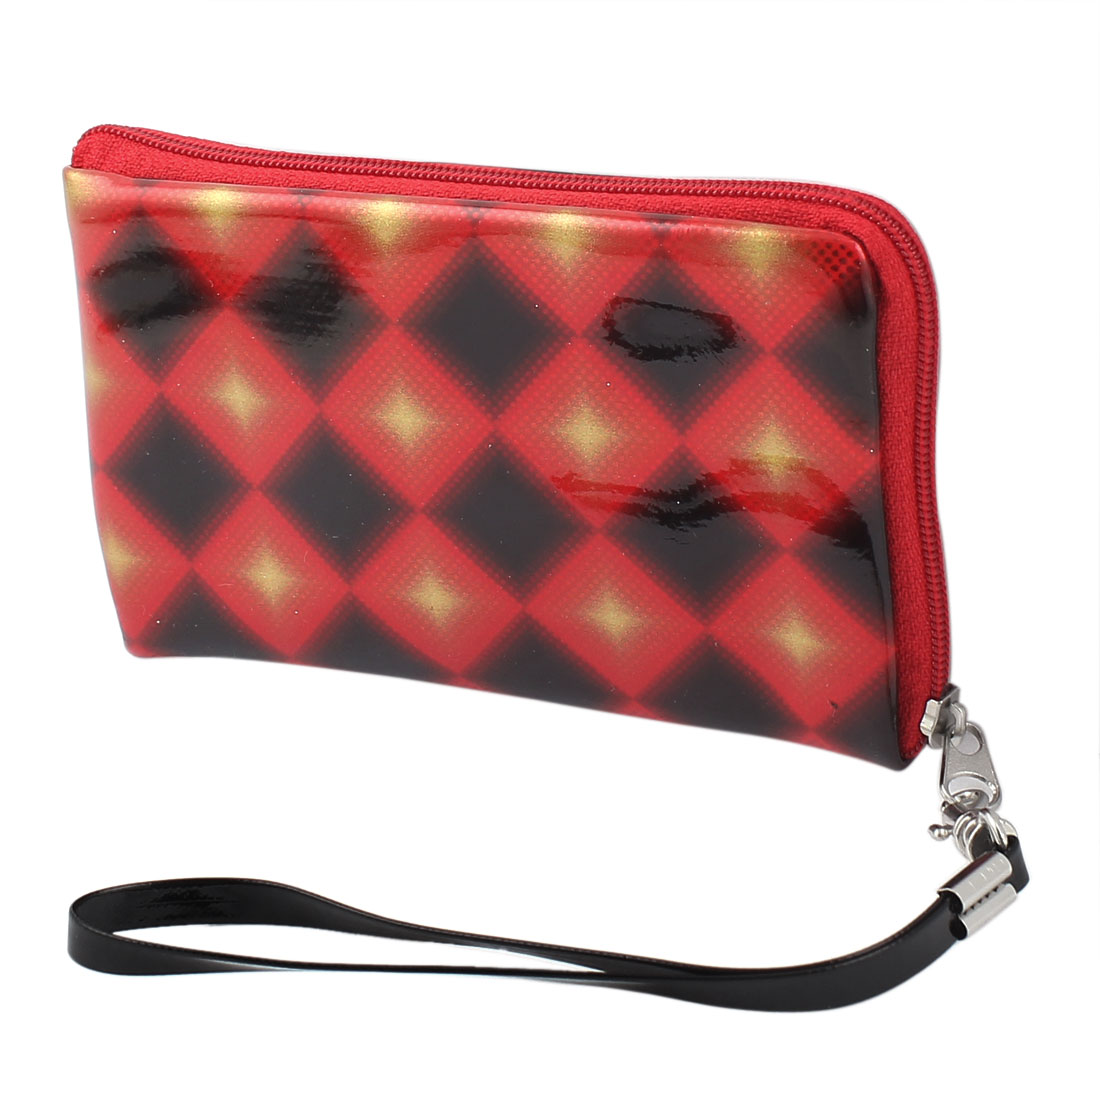 Patent Leather Rhombus Pattern Detachable Wrist Strap Cell Phone Bag Pouch Red